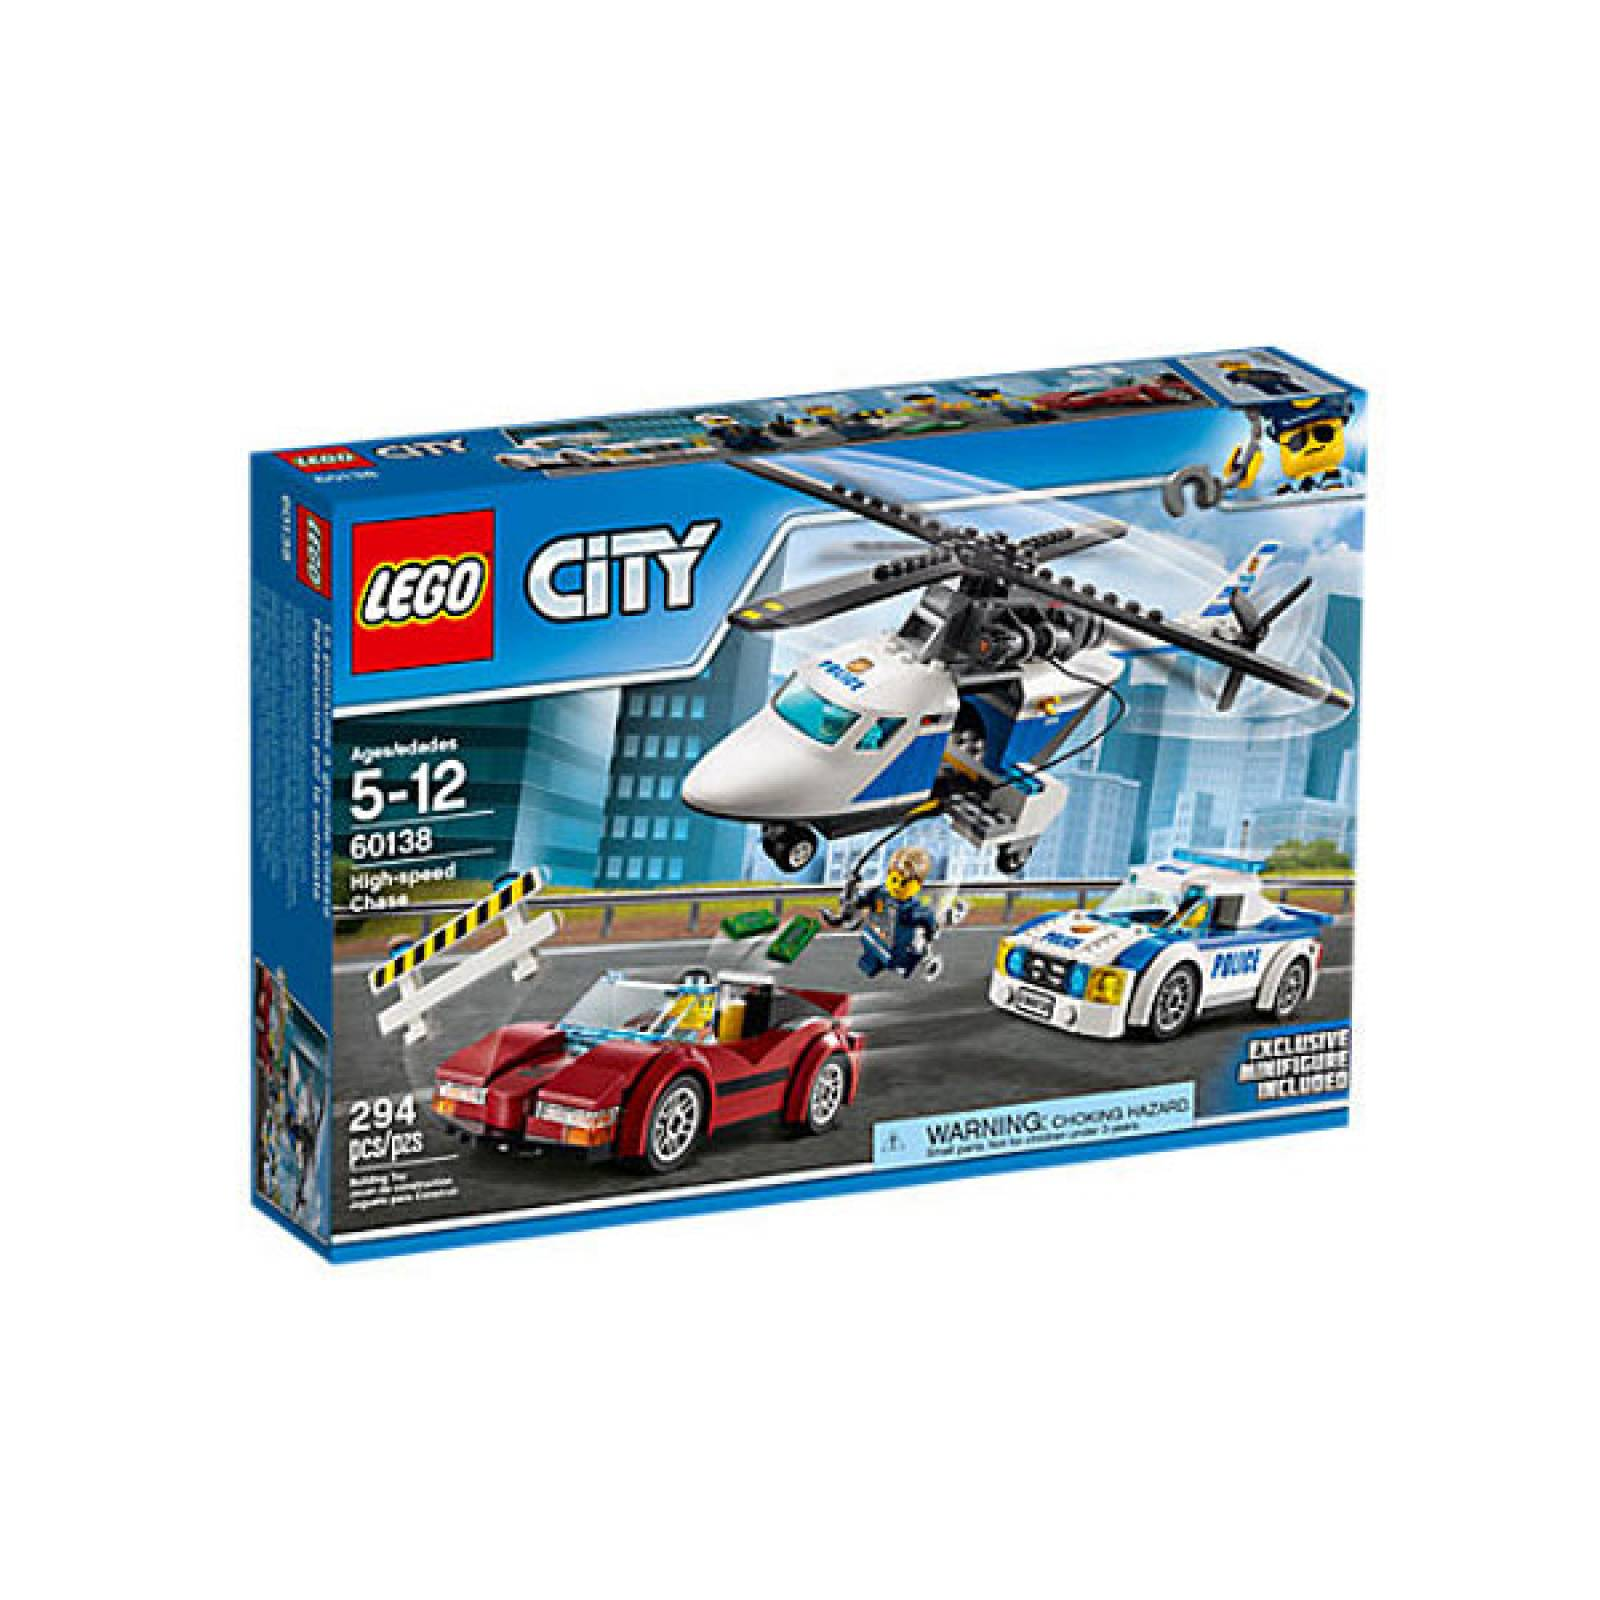 LEGO City High-Speed Chase 60138 - Retiring 2019 thumbnails